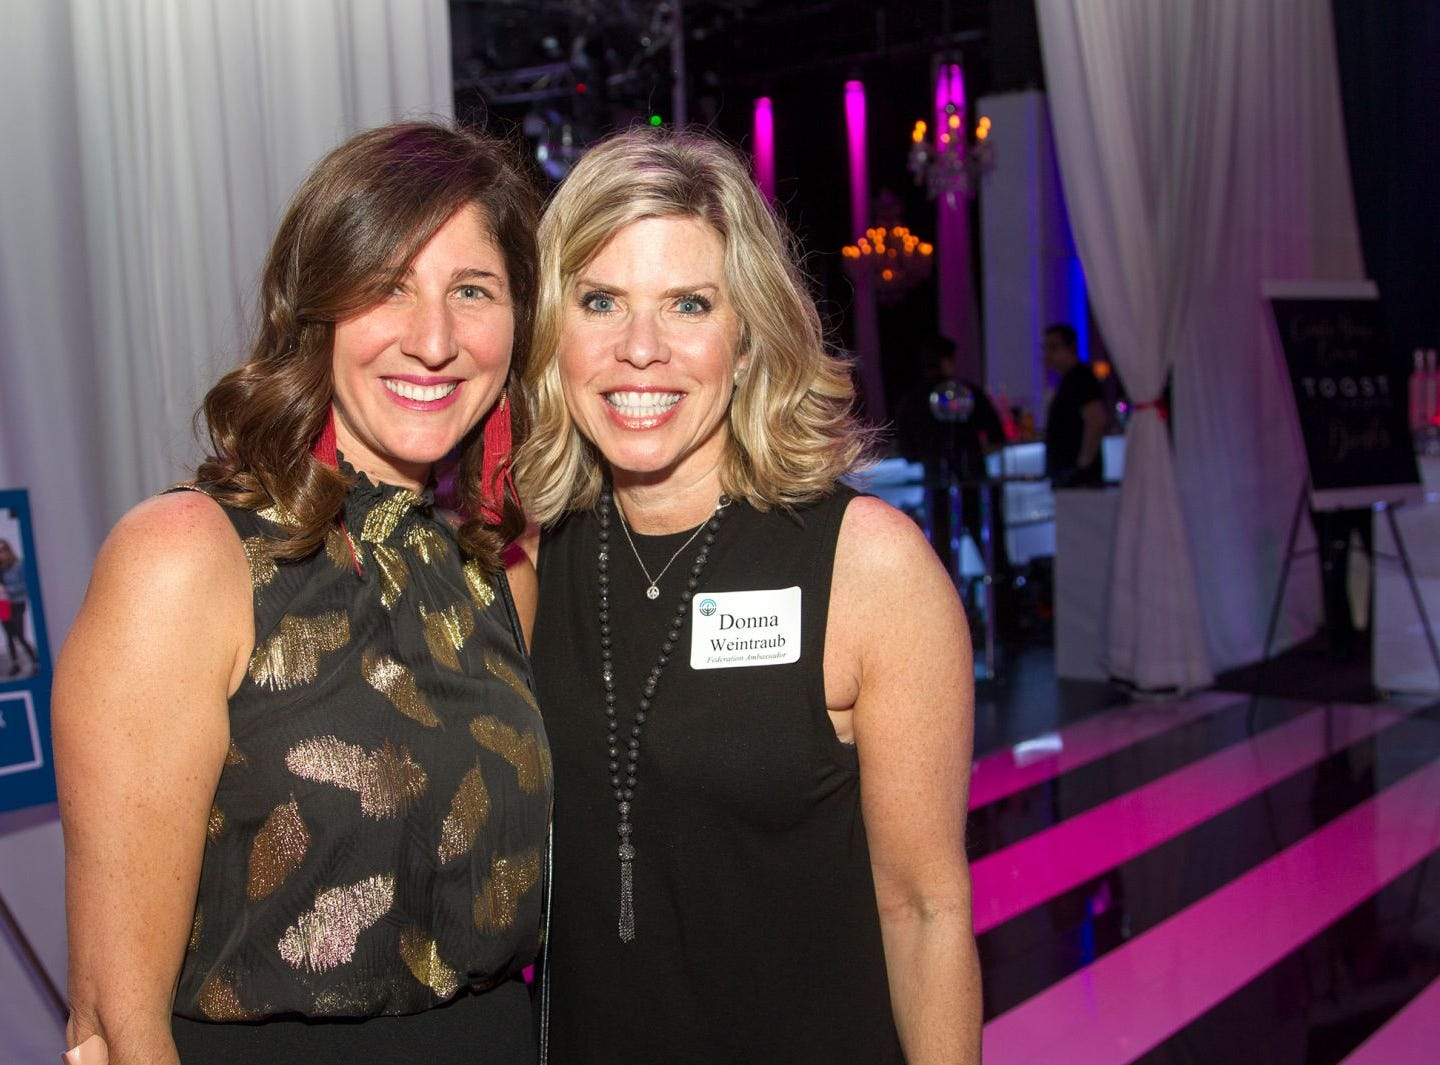 Michal Levinson, Donna Weintraub. Jewish Federation of Northern New Jersey held its first Girl's Night Out dance party at Space in Englewood. 01/24/2019